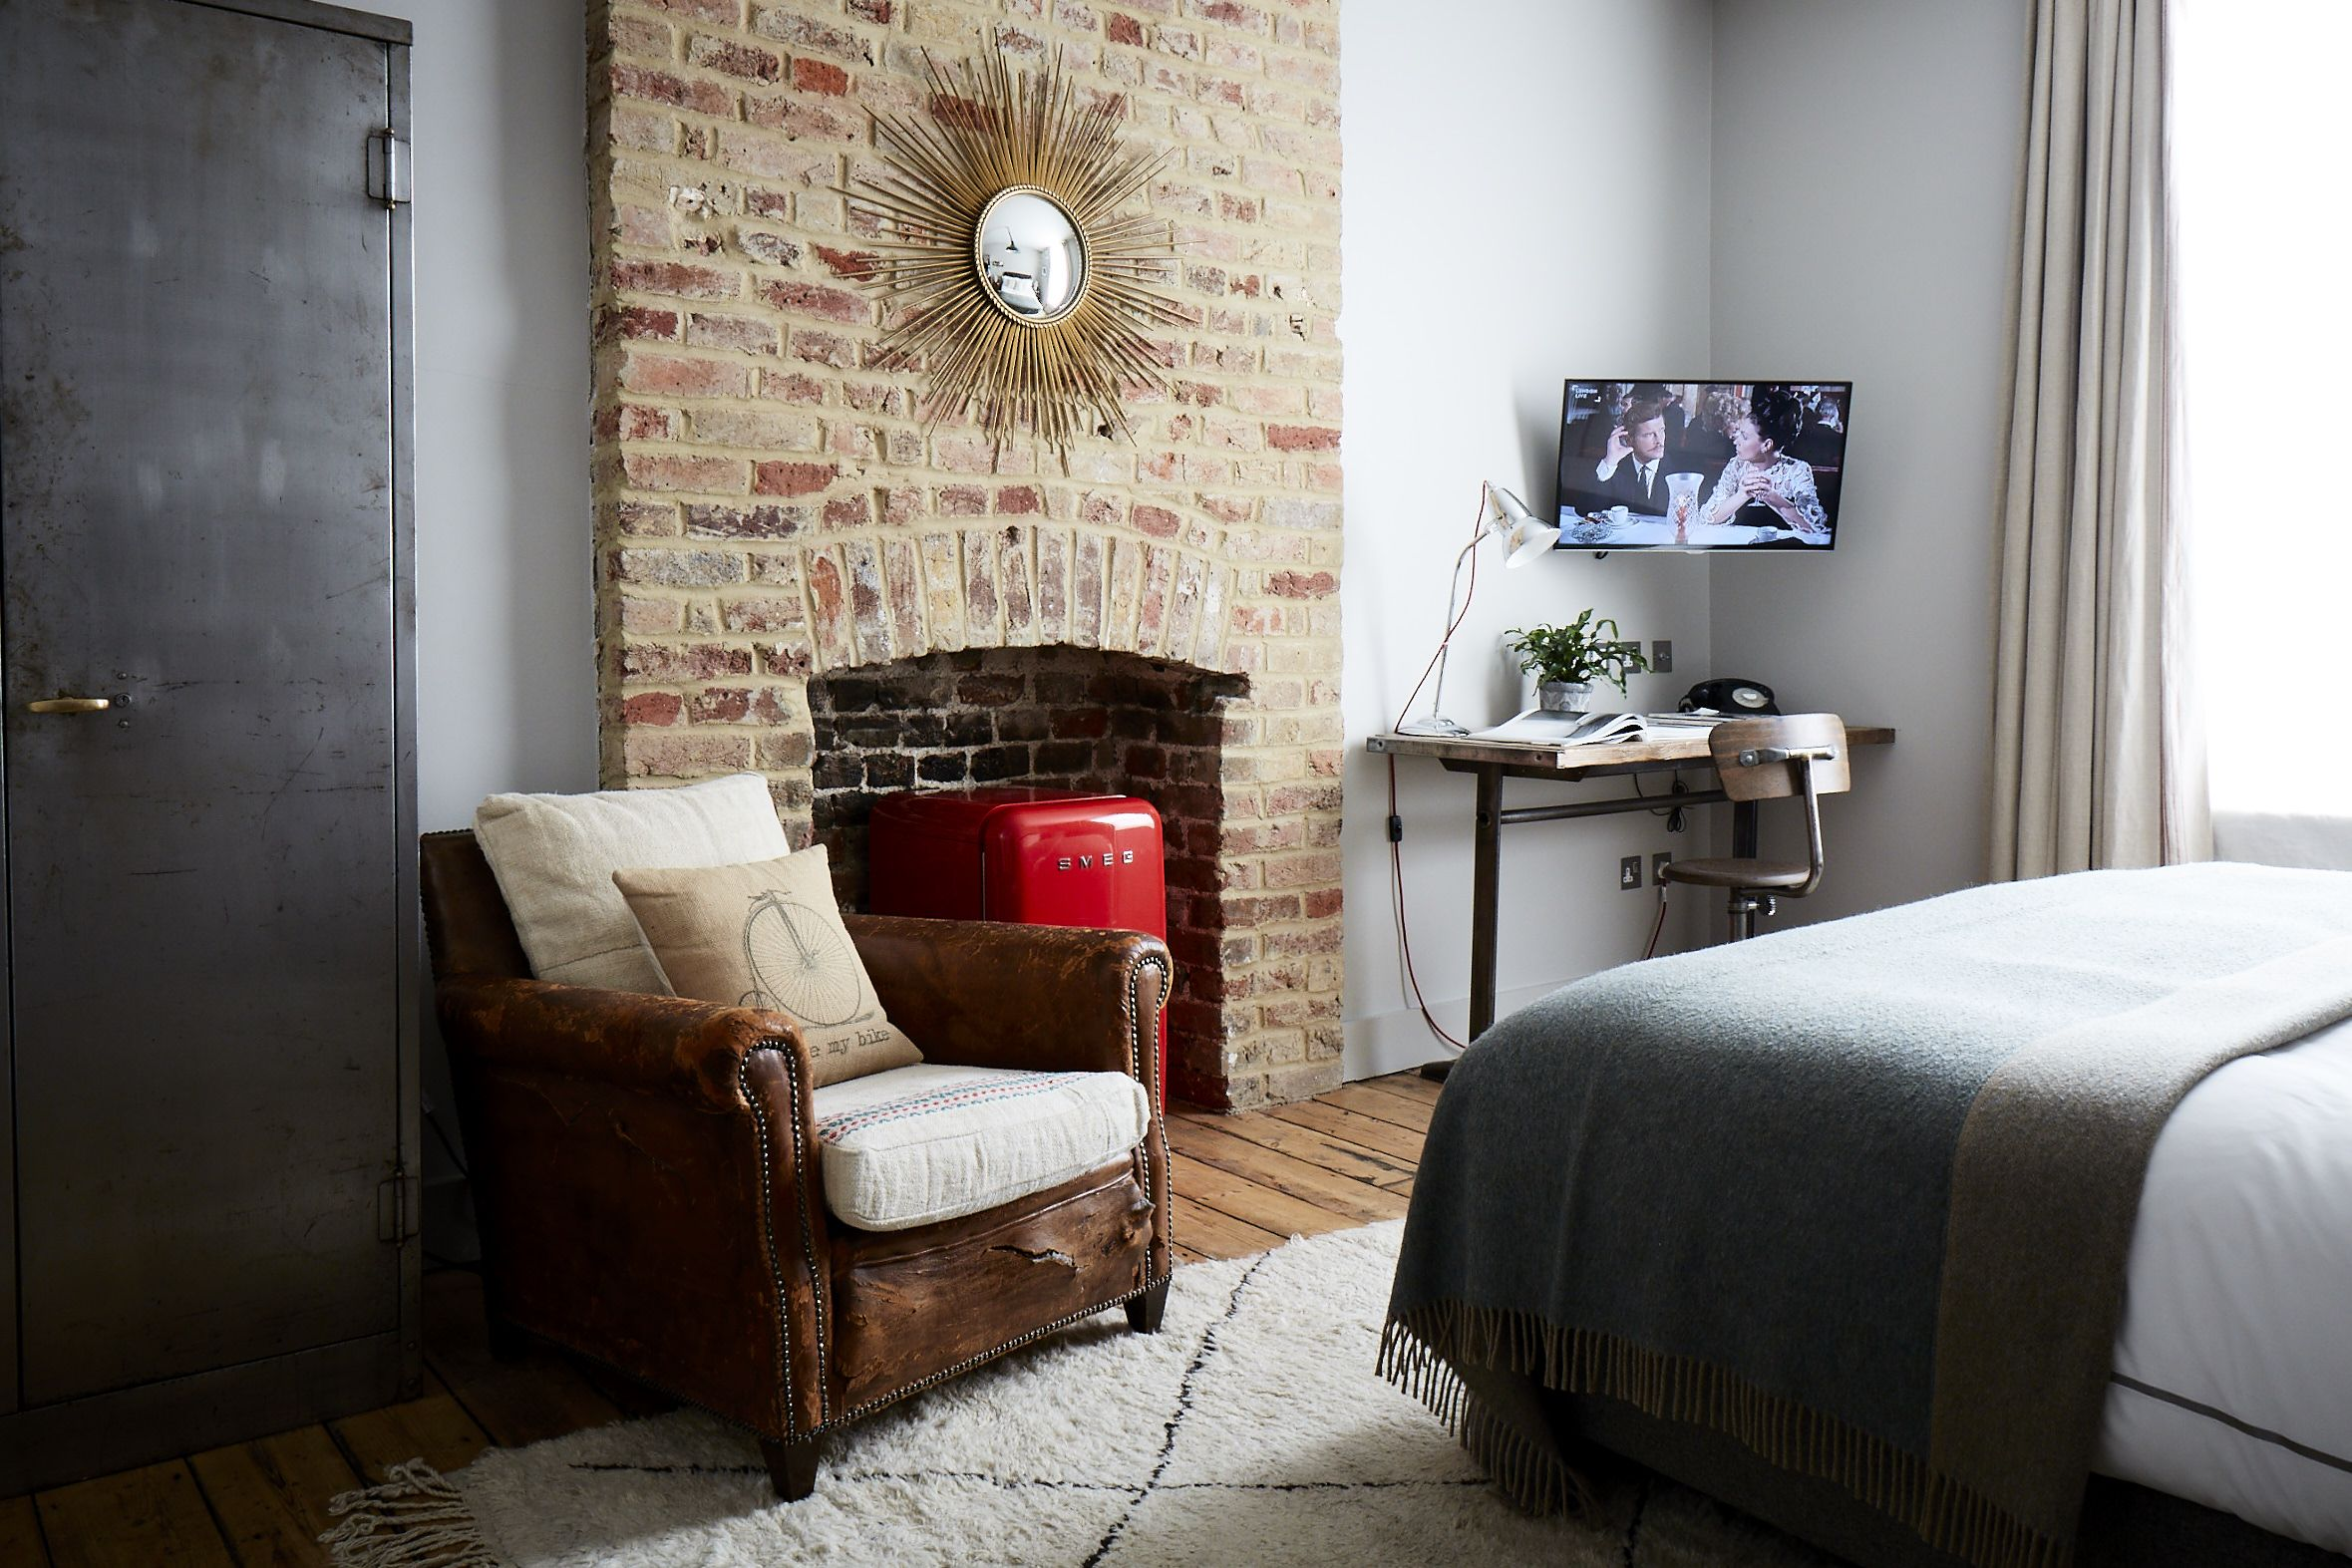 Medium room at artist residence london featuring a vintage leather club chair red smeg mini